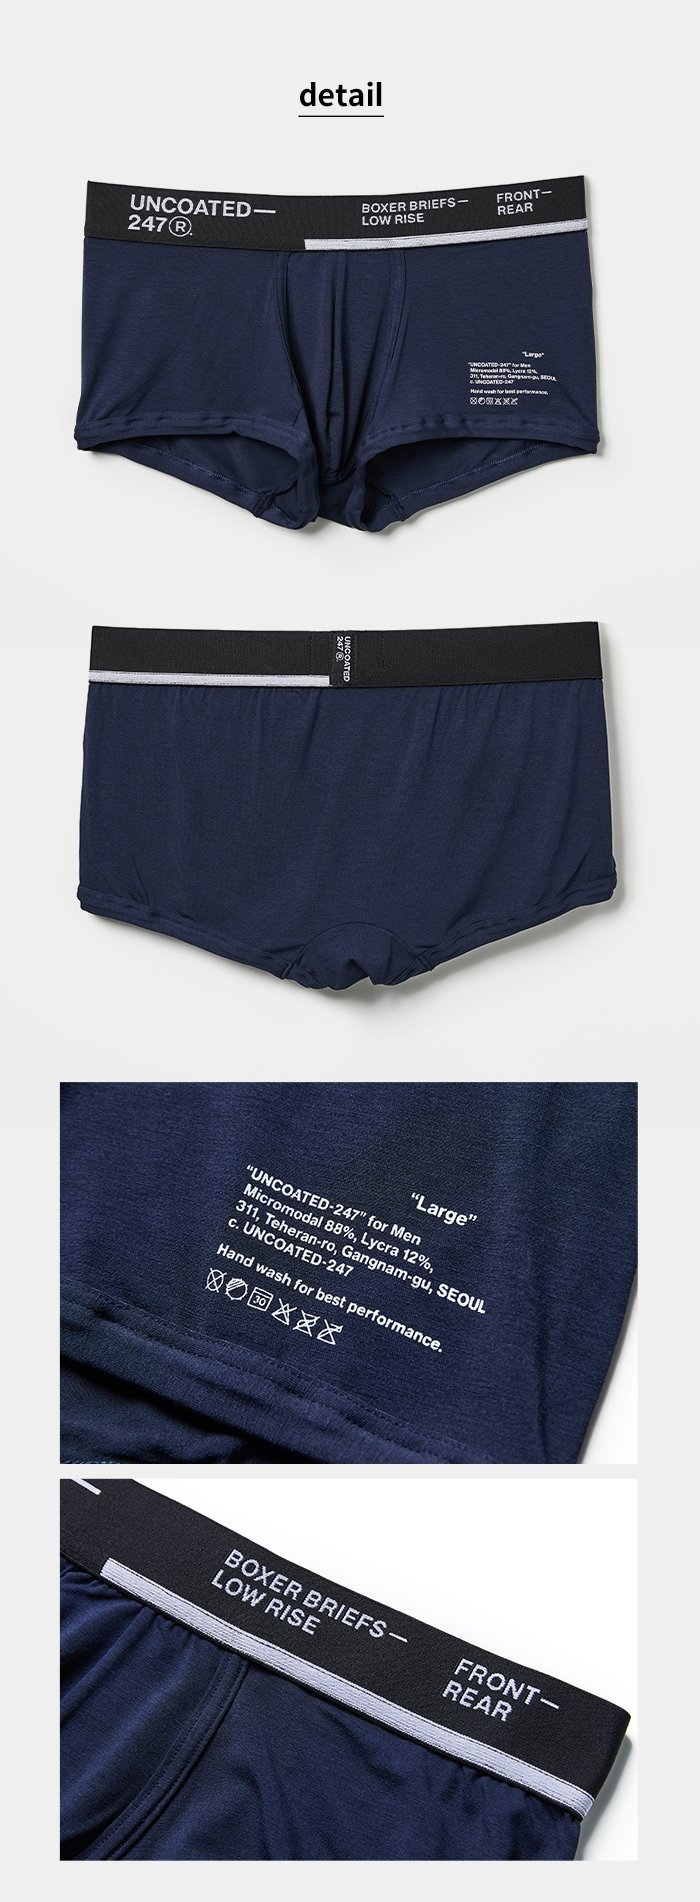 UNCOATED 247 Boxer Briefs Low Rise